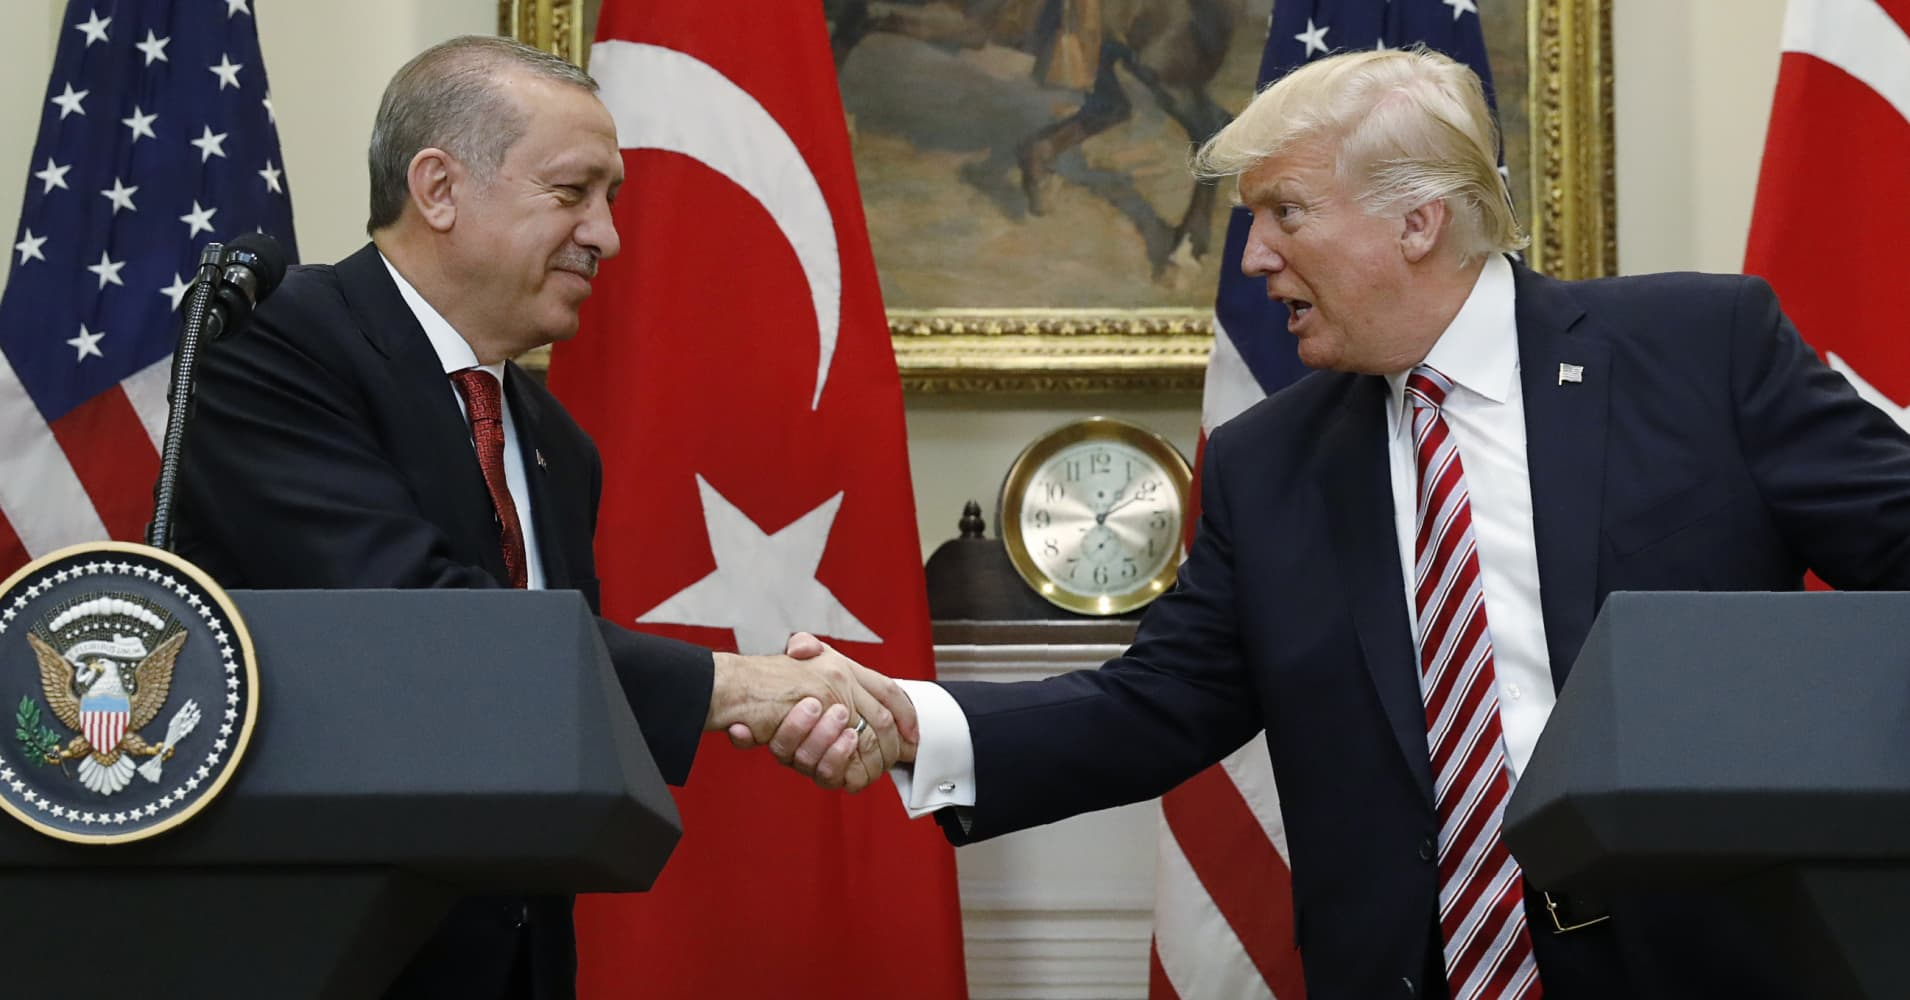 Turkey's president: Trump told me he's 'sorry' about violence involving Turkish bodyguards in DC